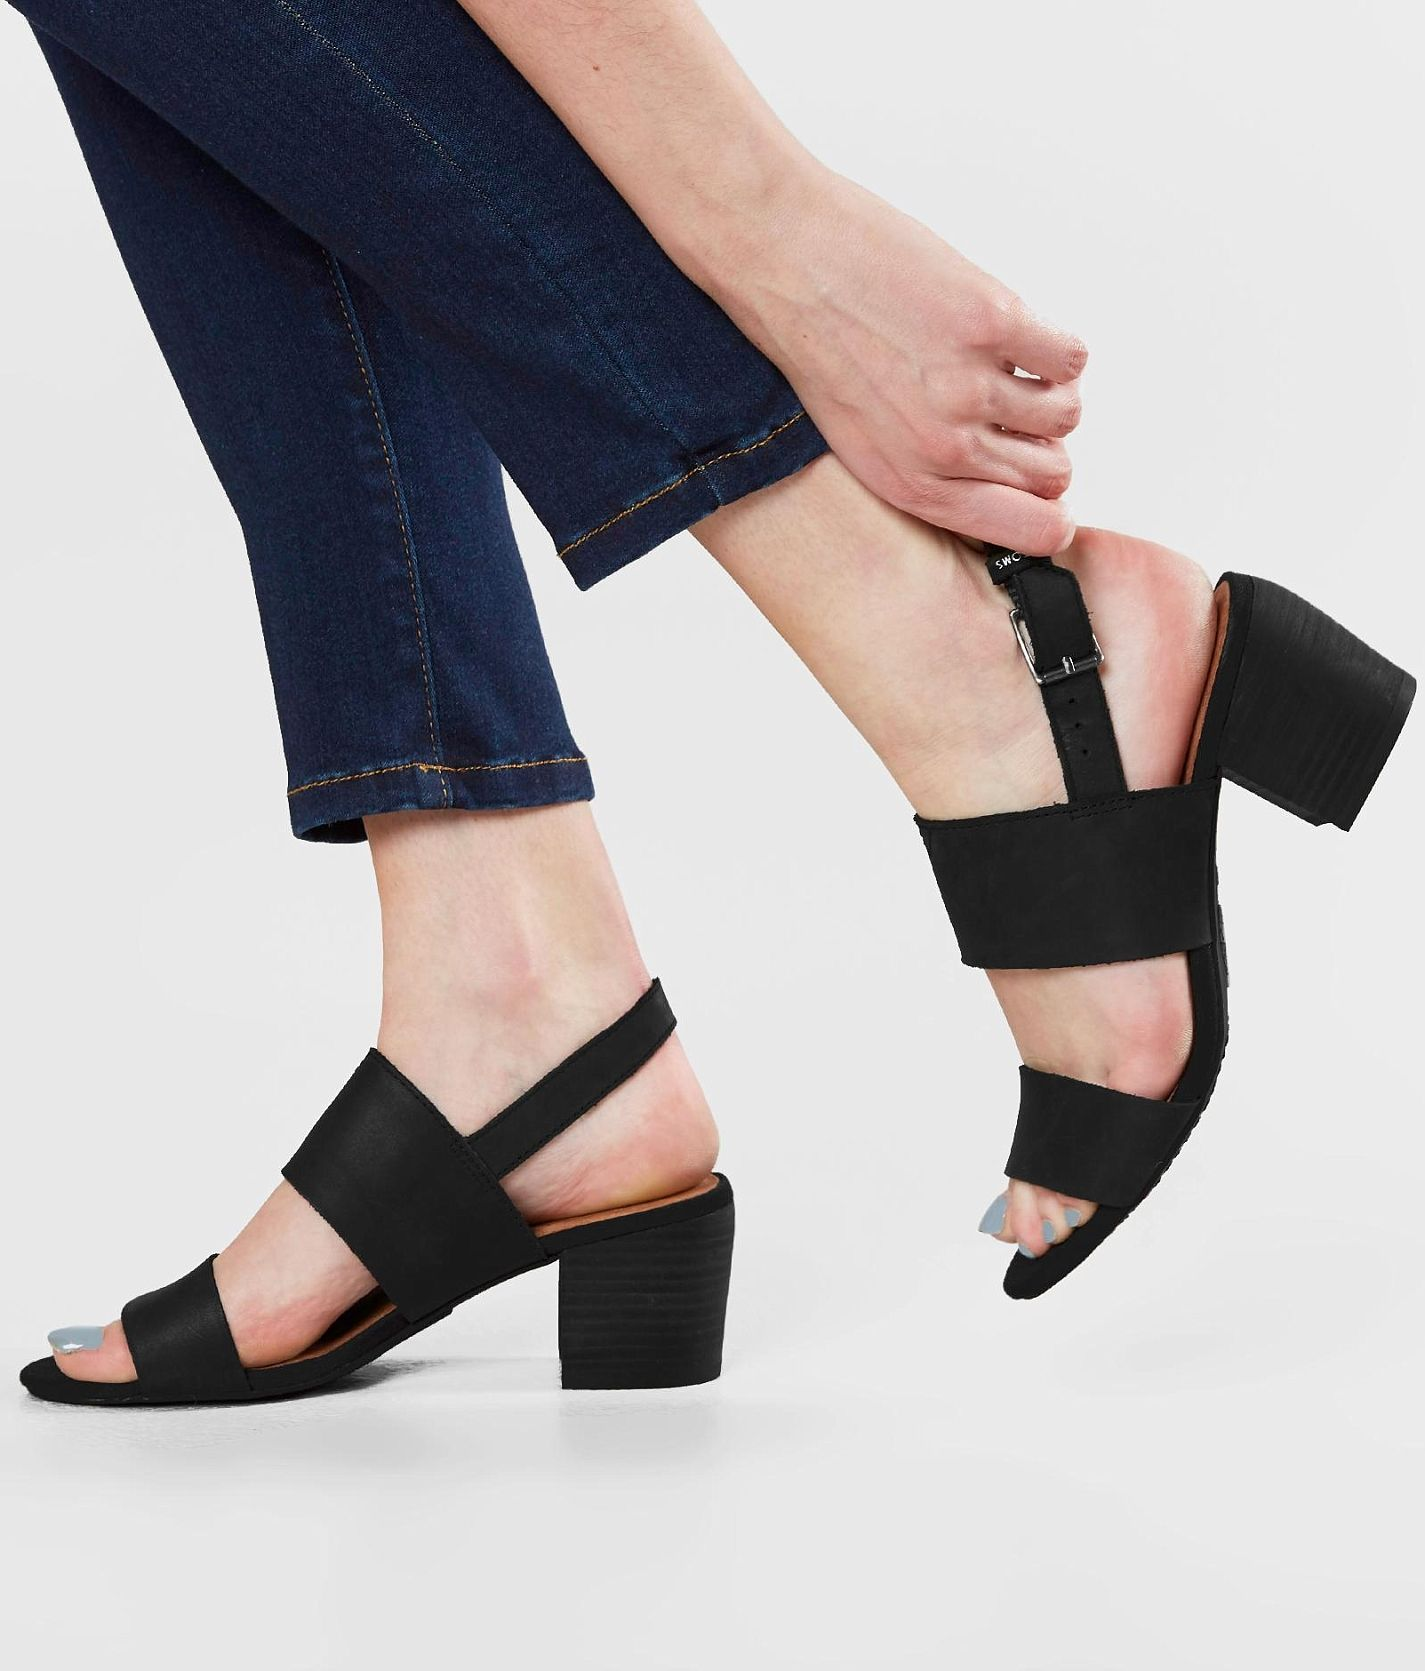 1db89b24c TOMS Poppy Heeled Sandal - Women s Shoes in Black Leather